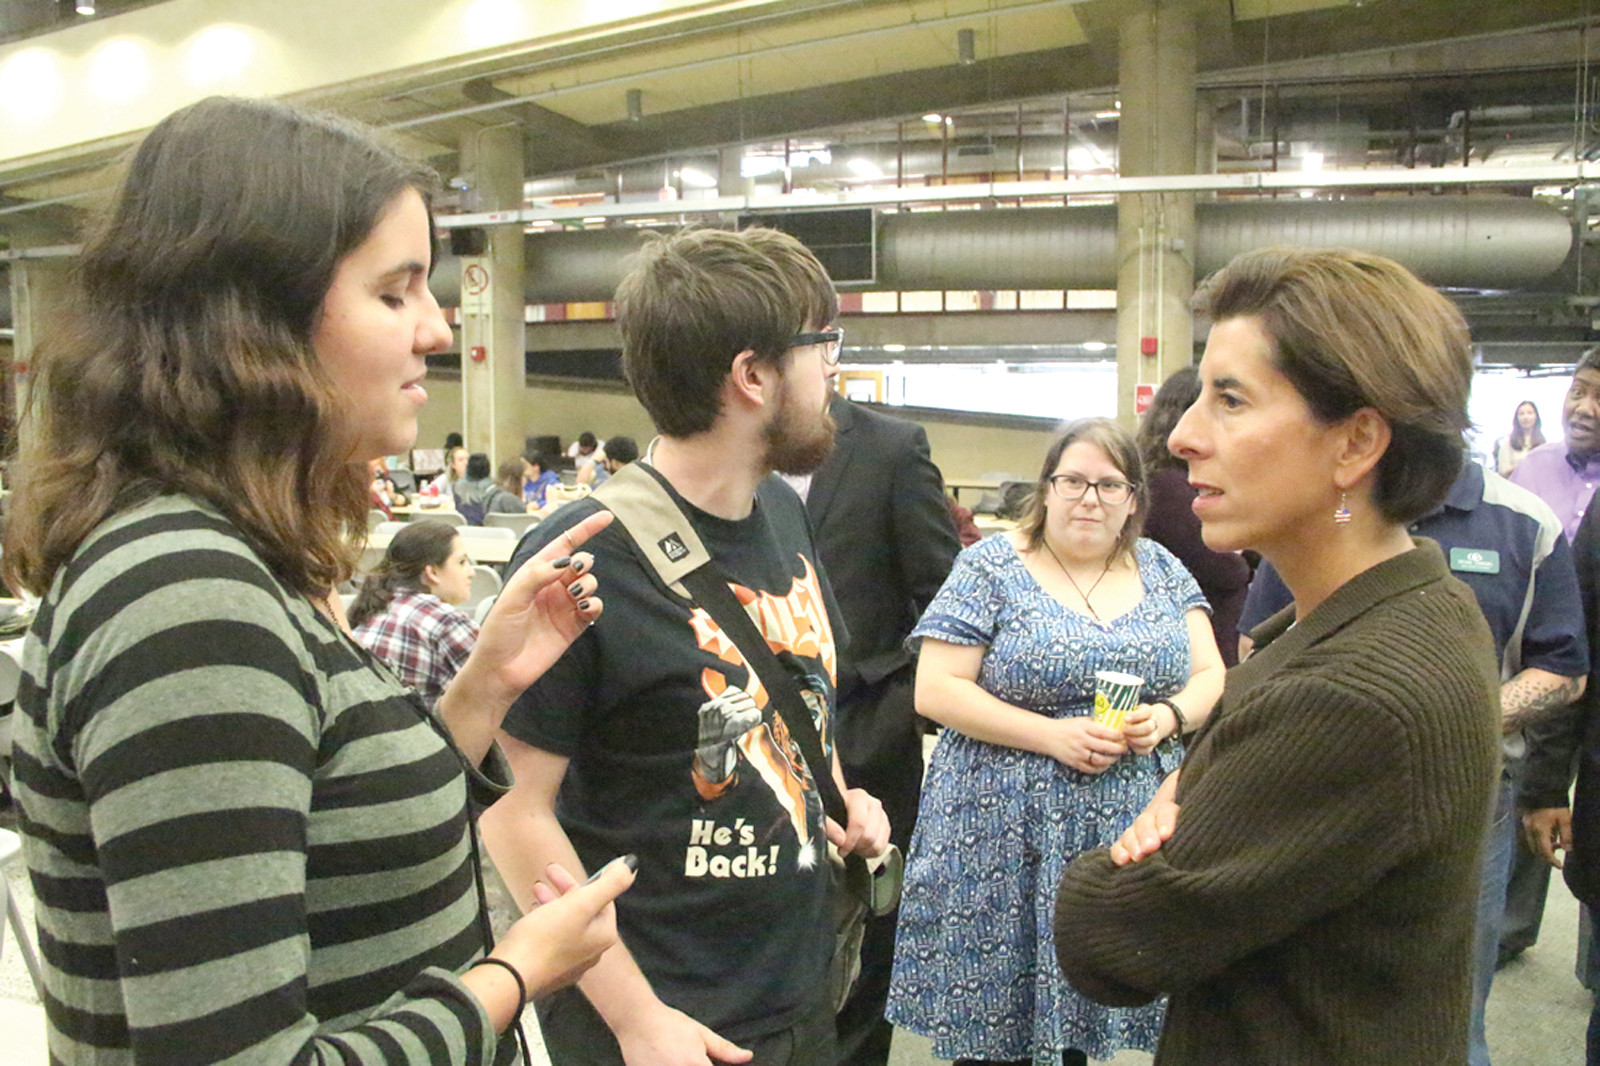 PROMISE FRESHMEN: CCRI freshmen Deryn Ordway and Alex Sylvester, who both are participating in the Promise Rhode Island Program, share their career plans with Governor Raimondo.